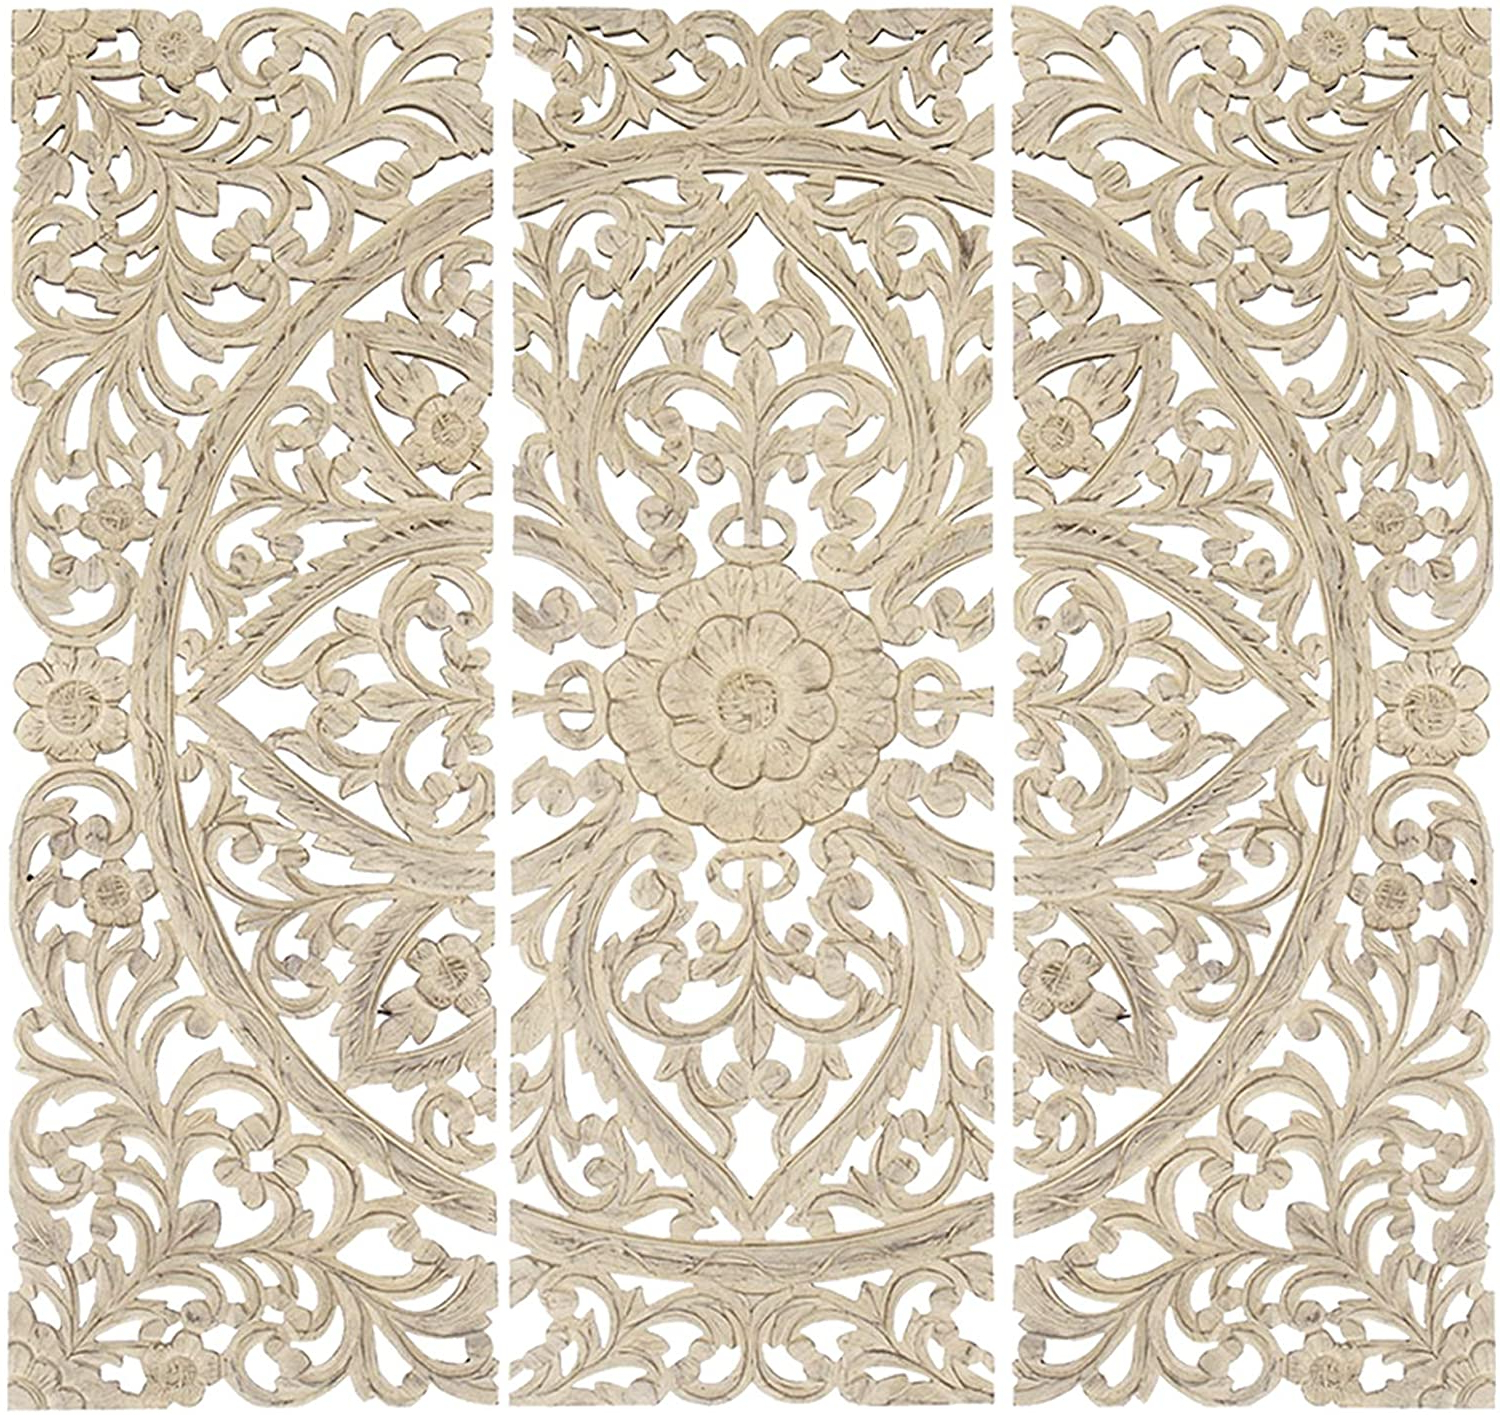 Most Recent Benzara Bm00070 Floral Hand Carved Wooden Wall Plaque, Antique White, Set Of 3 Regarding 3 Piece Carved Ornate Wall Décor Set (View 13 of 20)